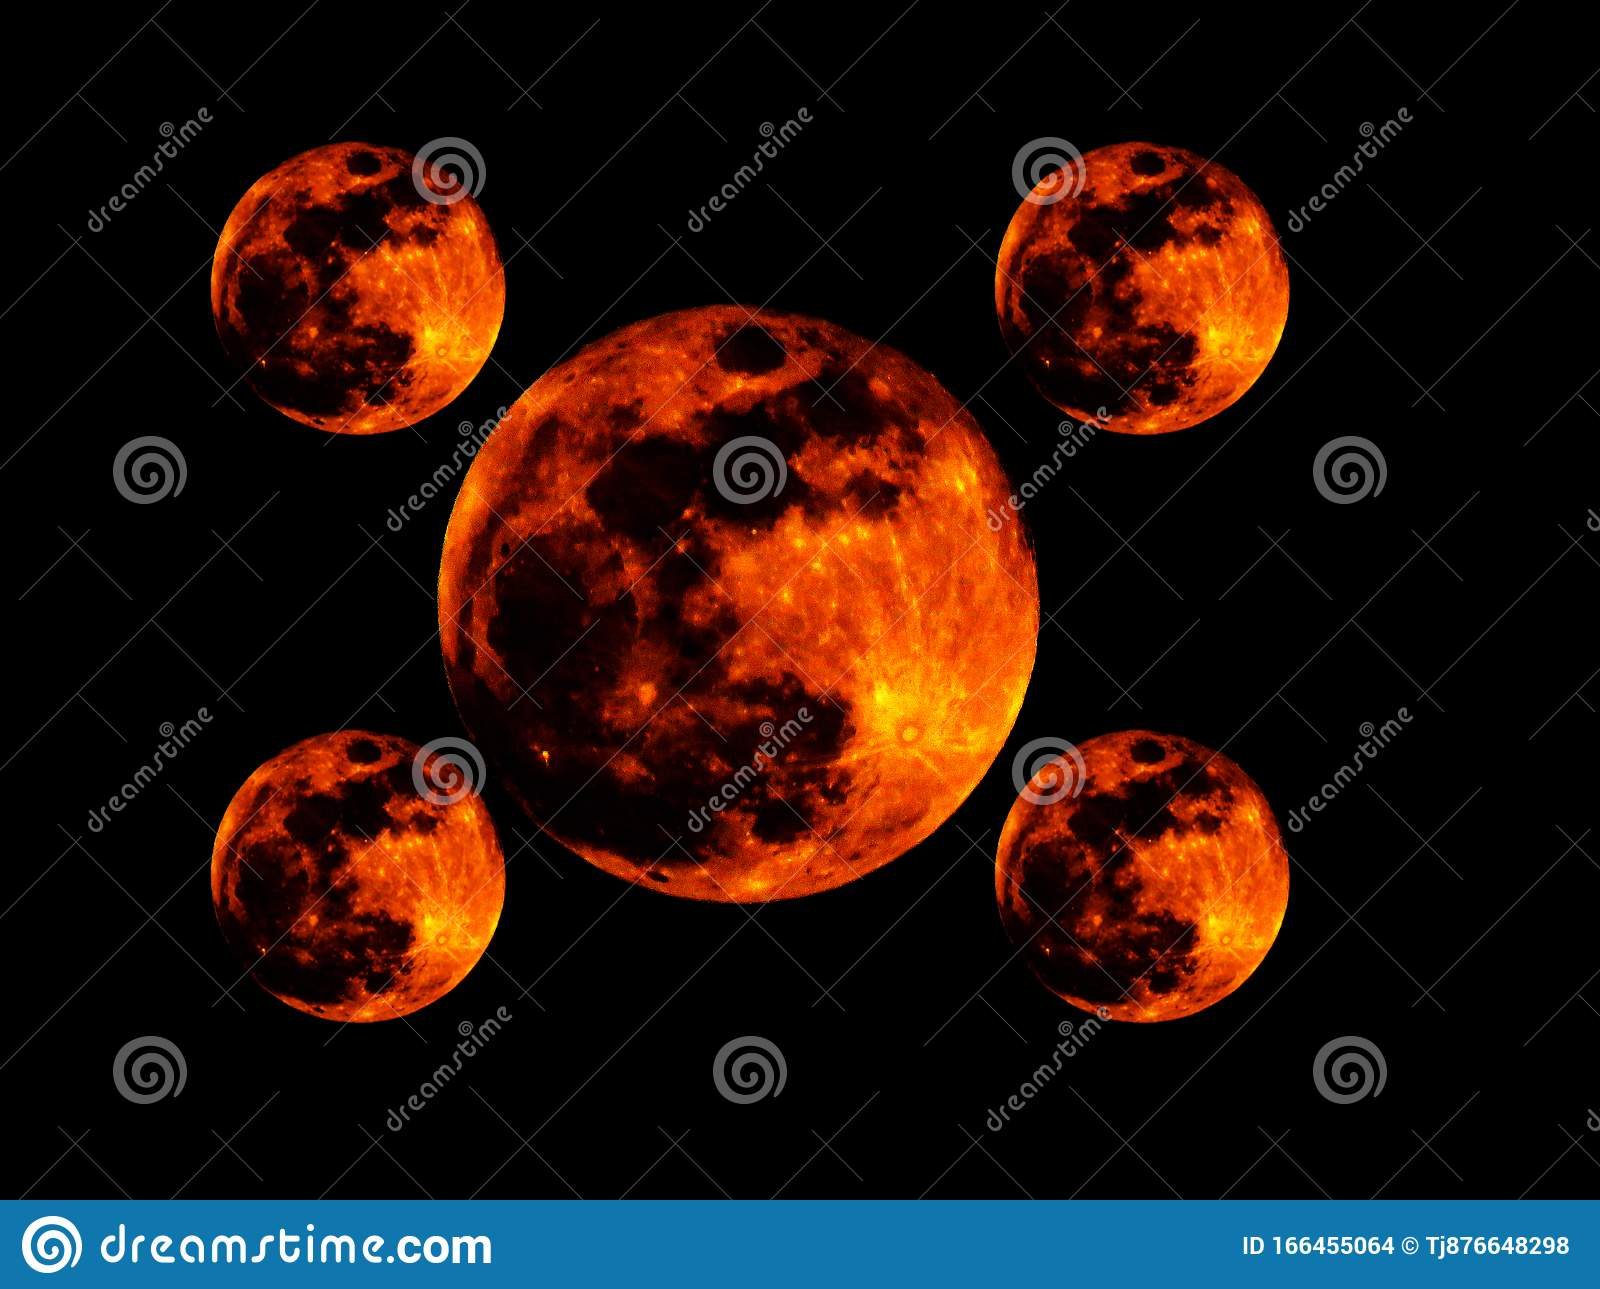 One Big And Four Small Bright Full Orange Red Blood Moon On Black Background Wallpaper With Repeated Figures Stock Illustration Illustration Of Abstract Banner 166455064